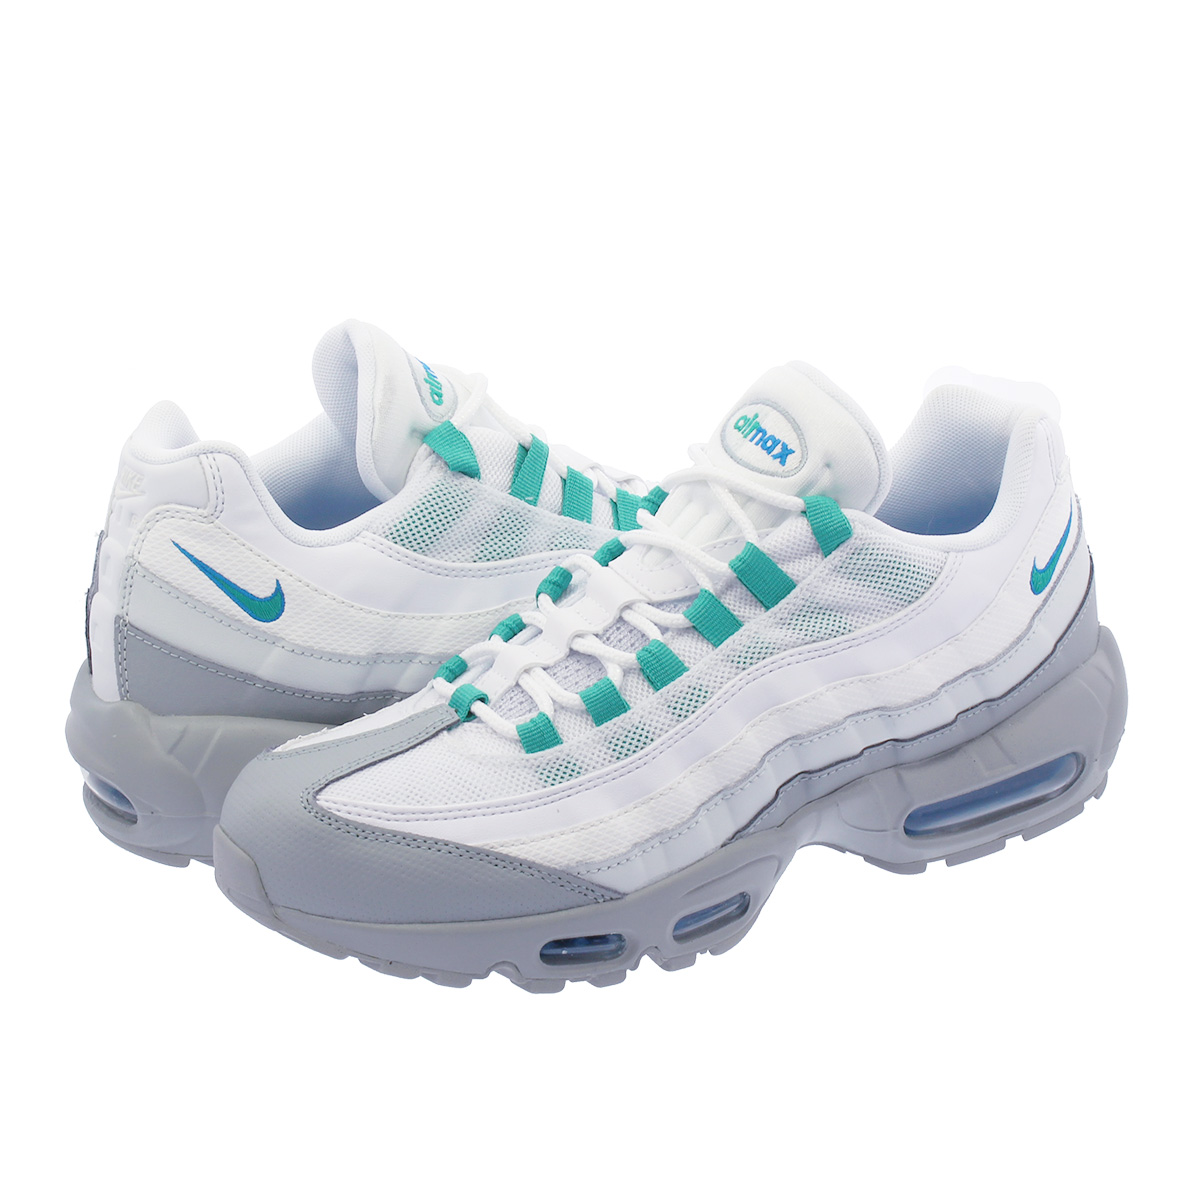 NIKE AIR MAX 95 ESSENTIAL Kie Ney AMAX 95 essential LIGHT PUMICECLEAR EMERALDWHITE 749,766 032